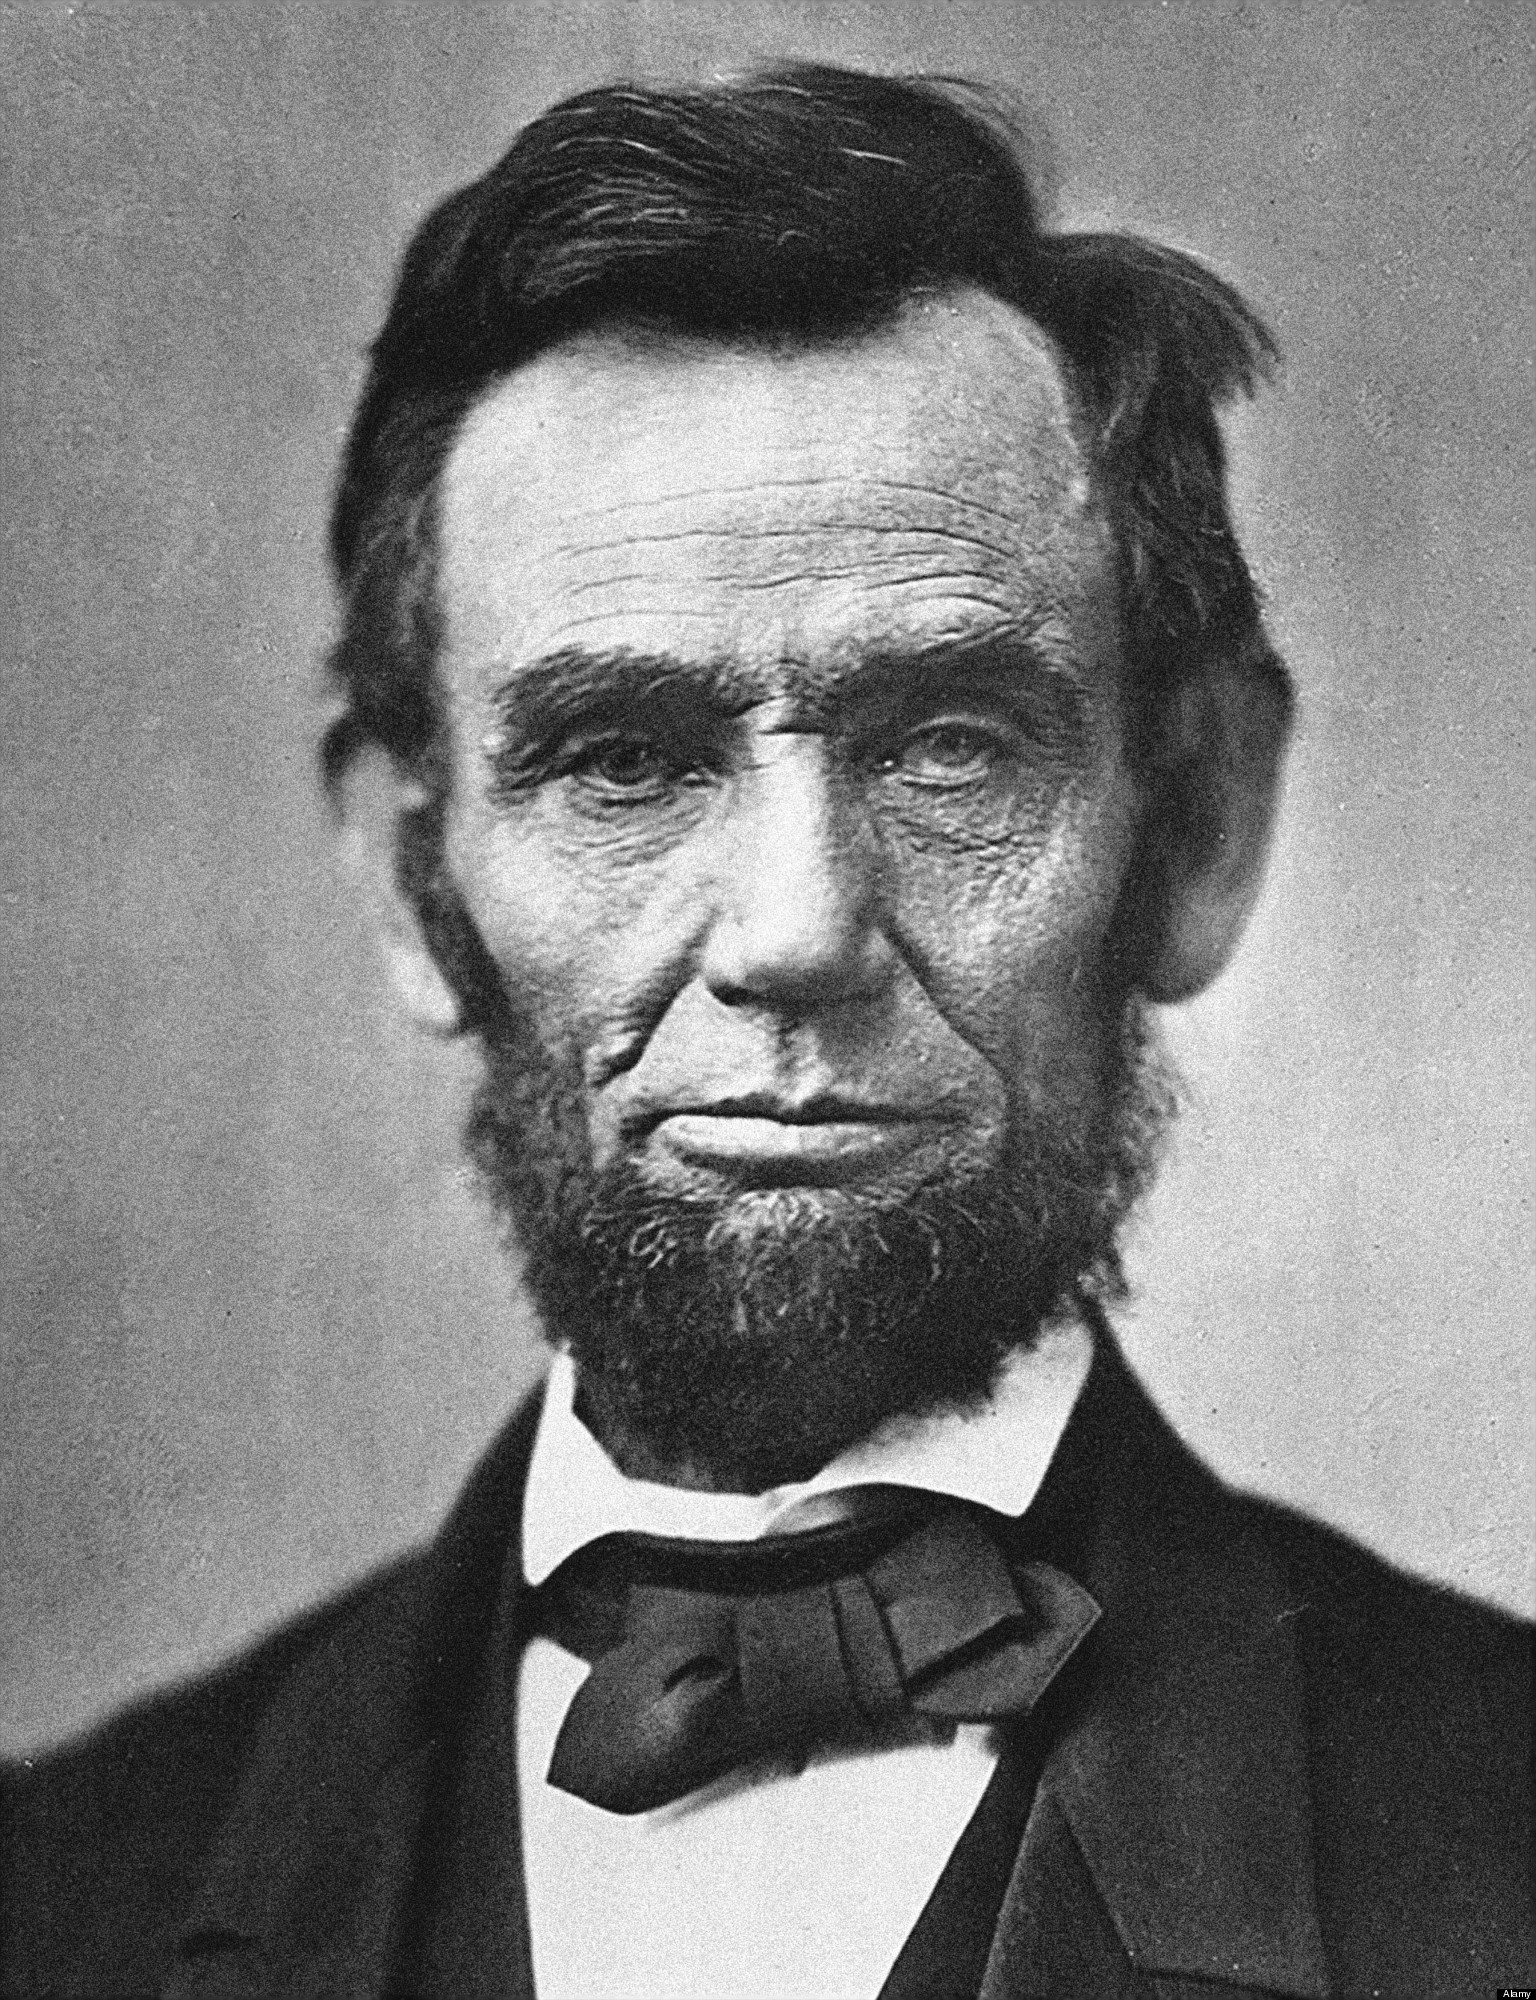 How Old Is Abe Lincoln 113